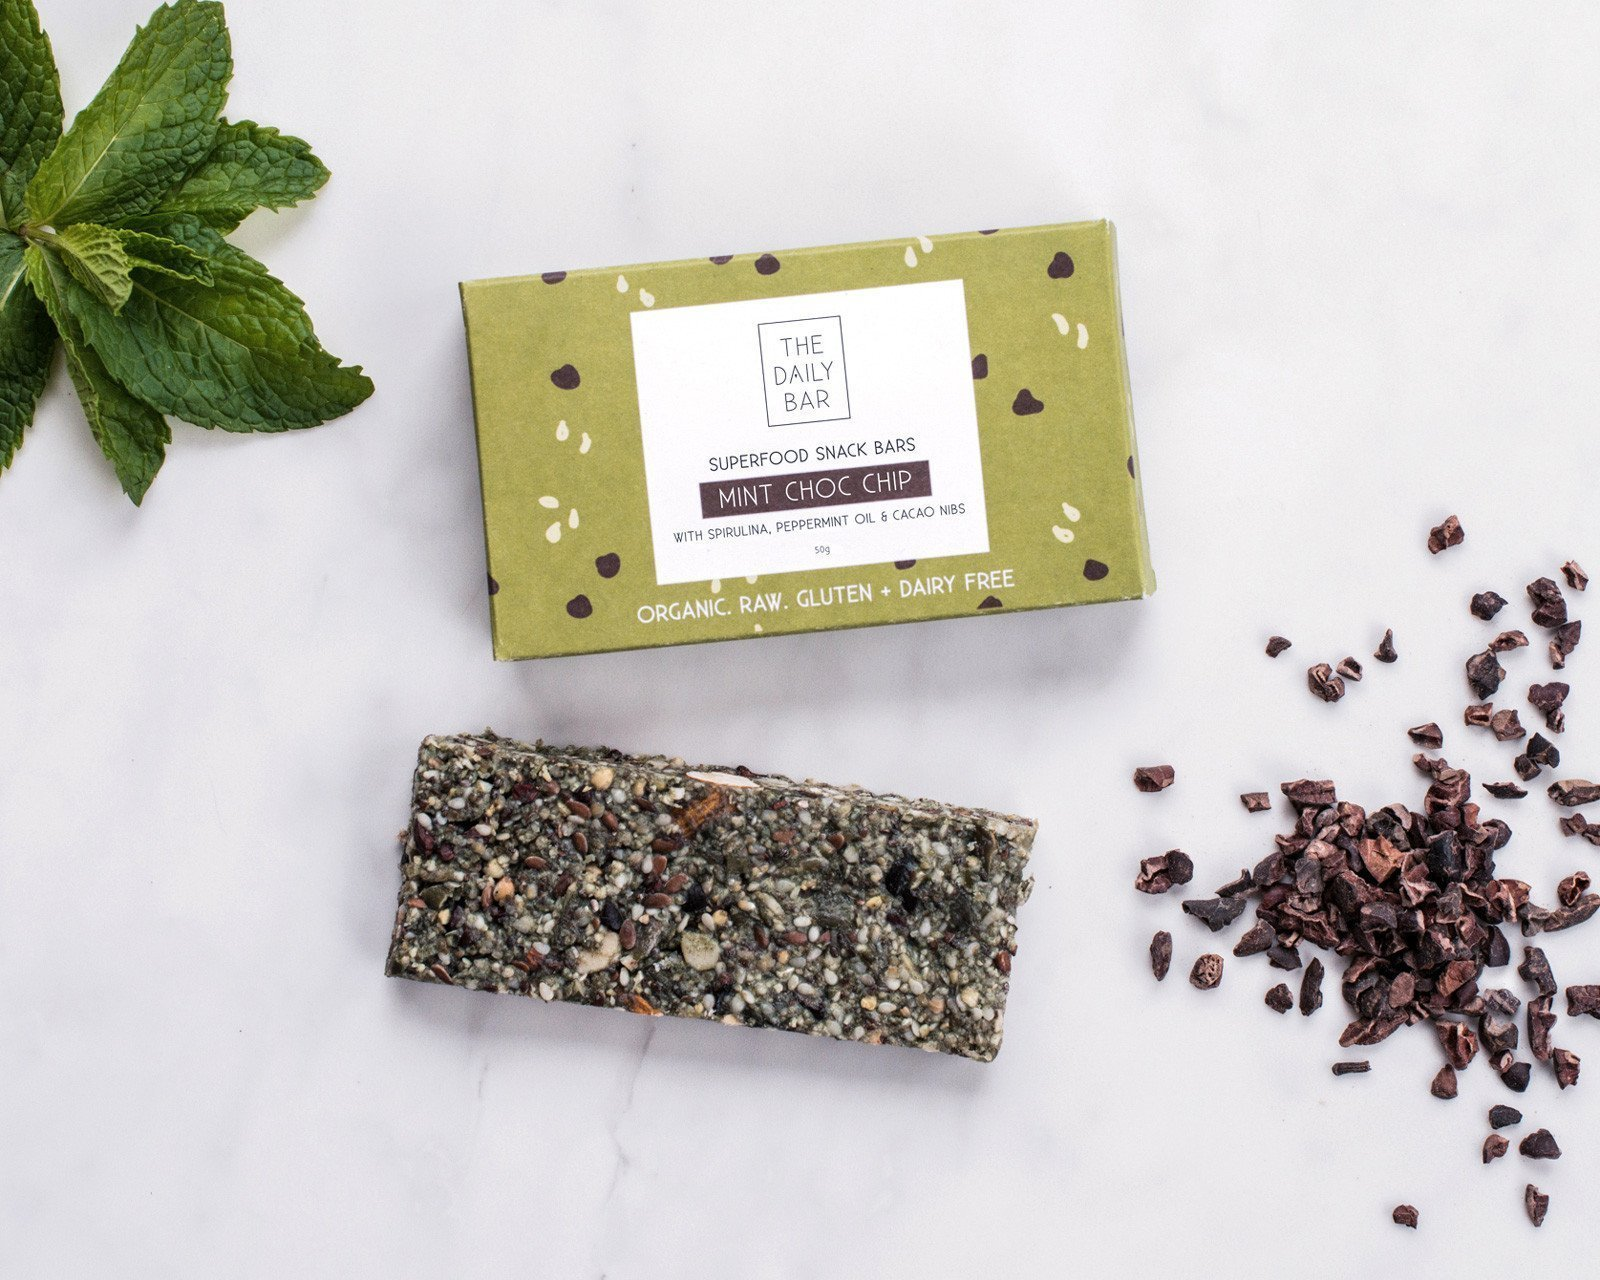 The Daily Bar mint choc chip gluten free healthy snack bar buy online at Yo Life 1